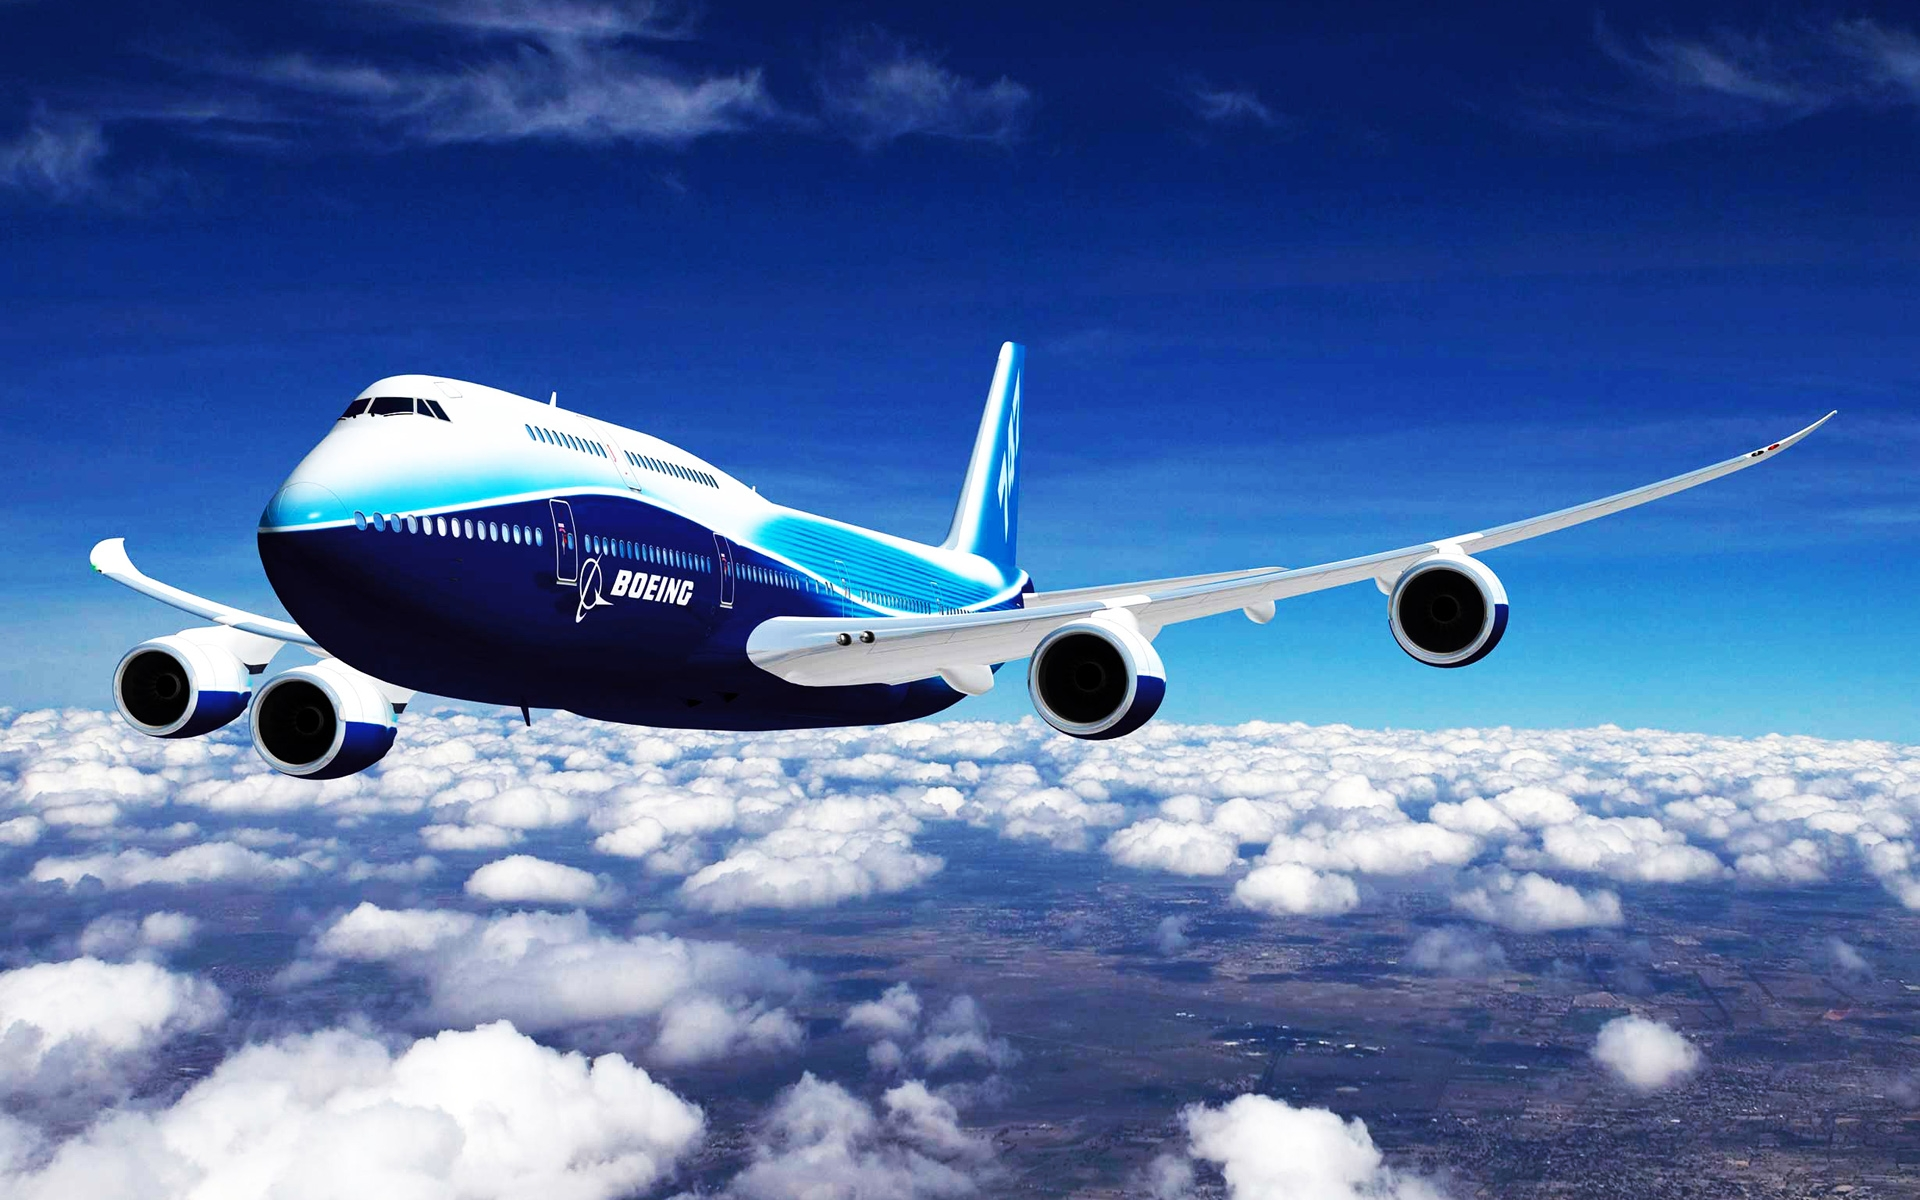 Amazing Aircraft Pictures & Backgrounds